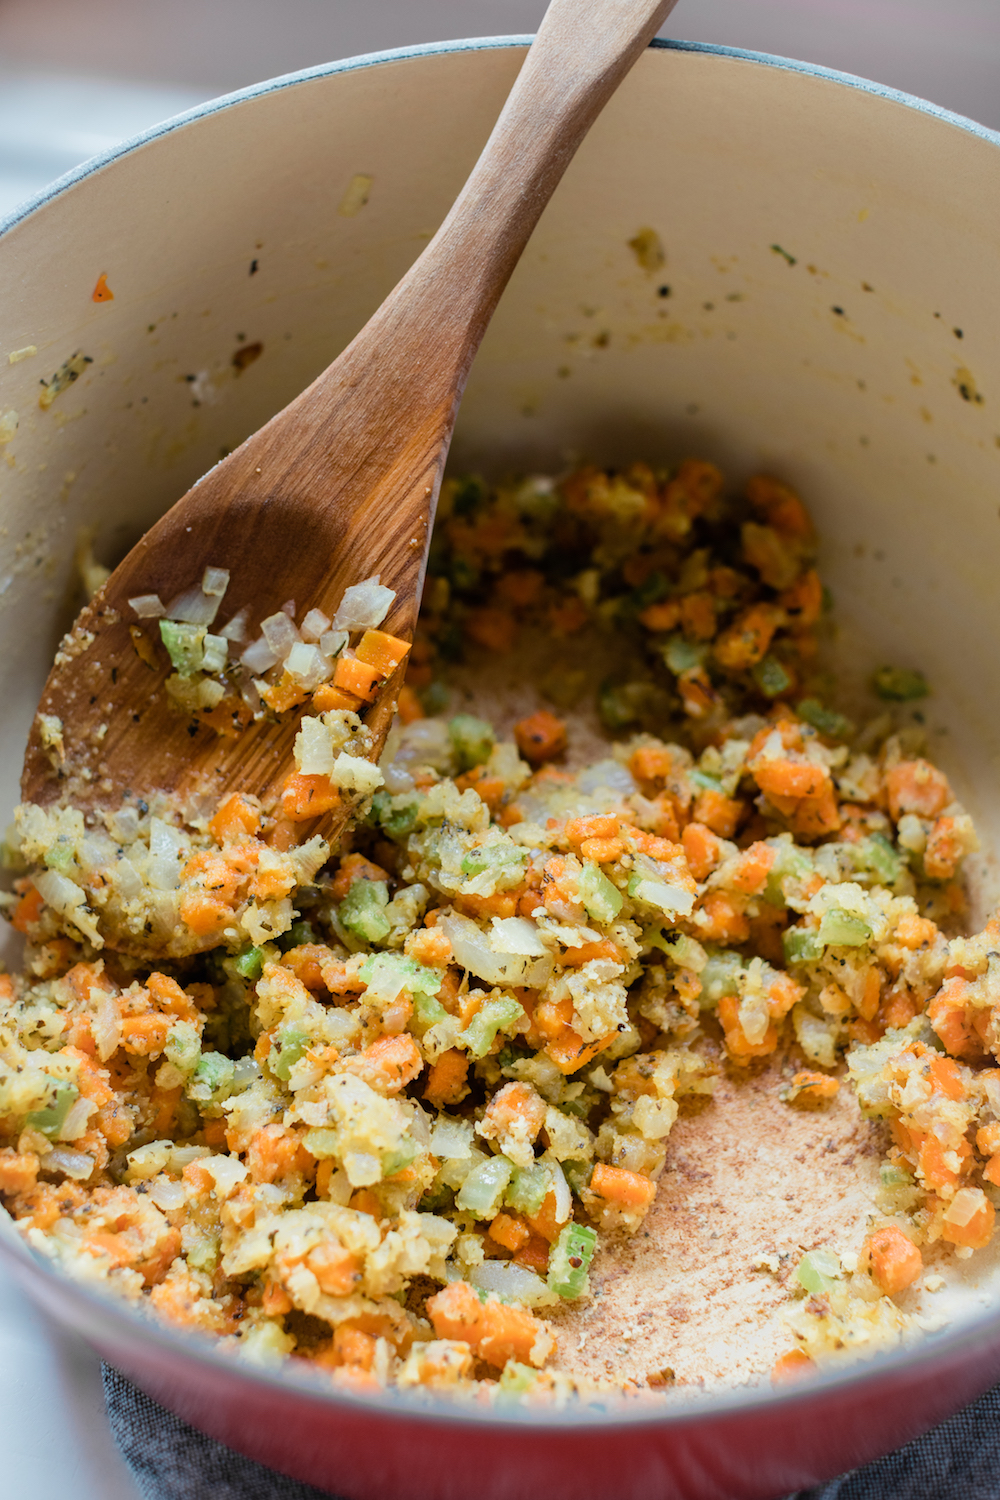 Mirepoix with a Roux